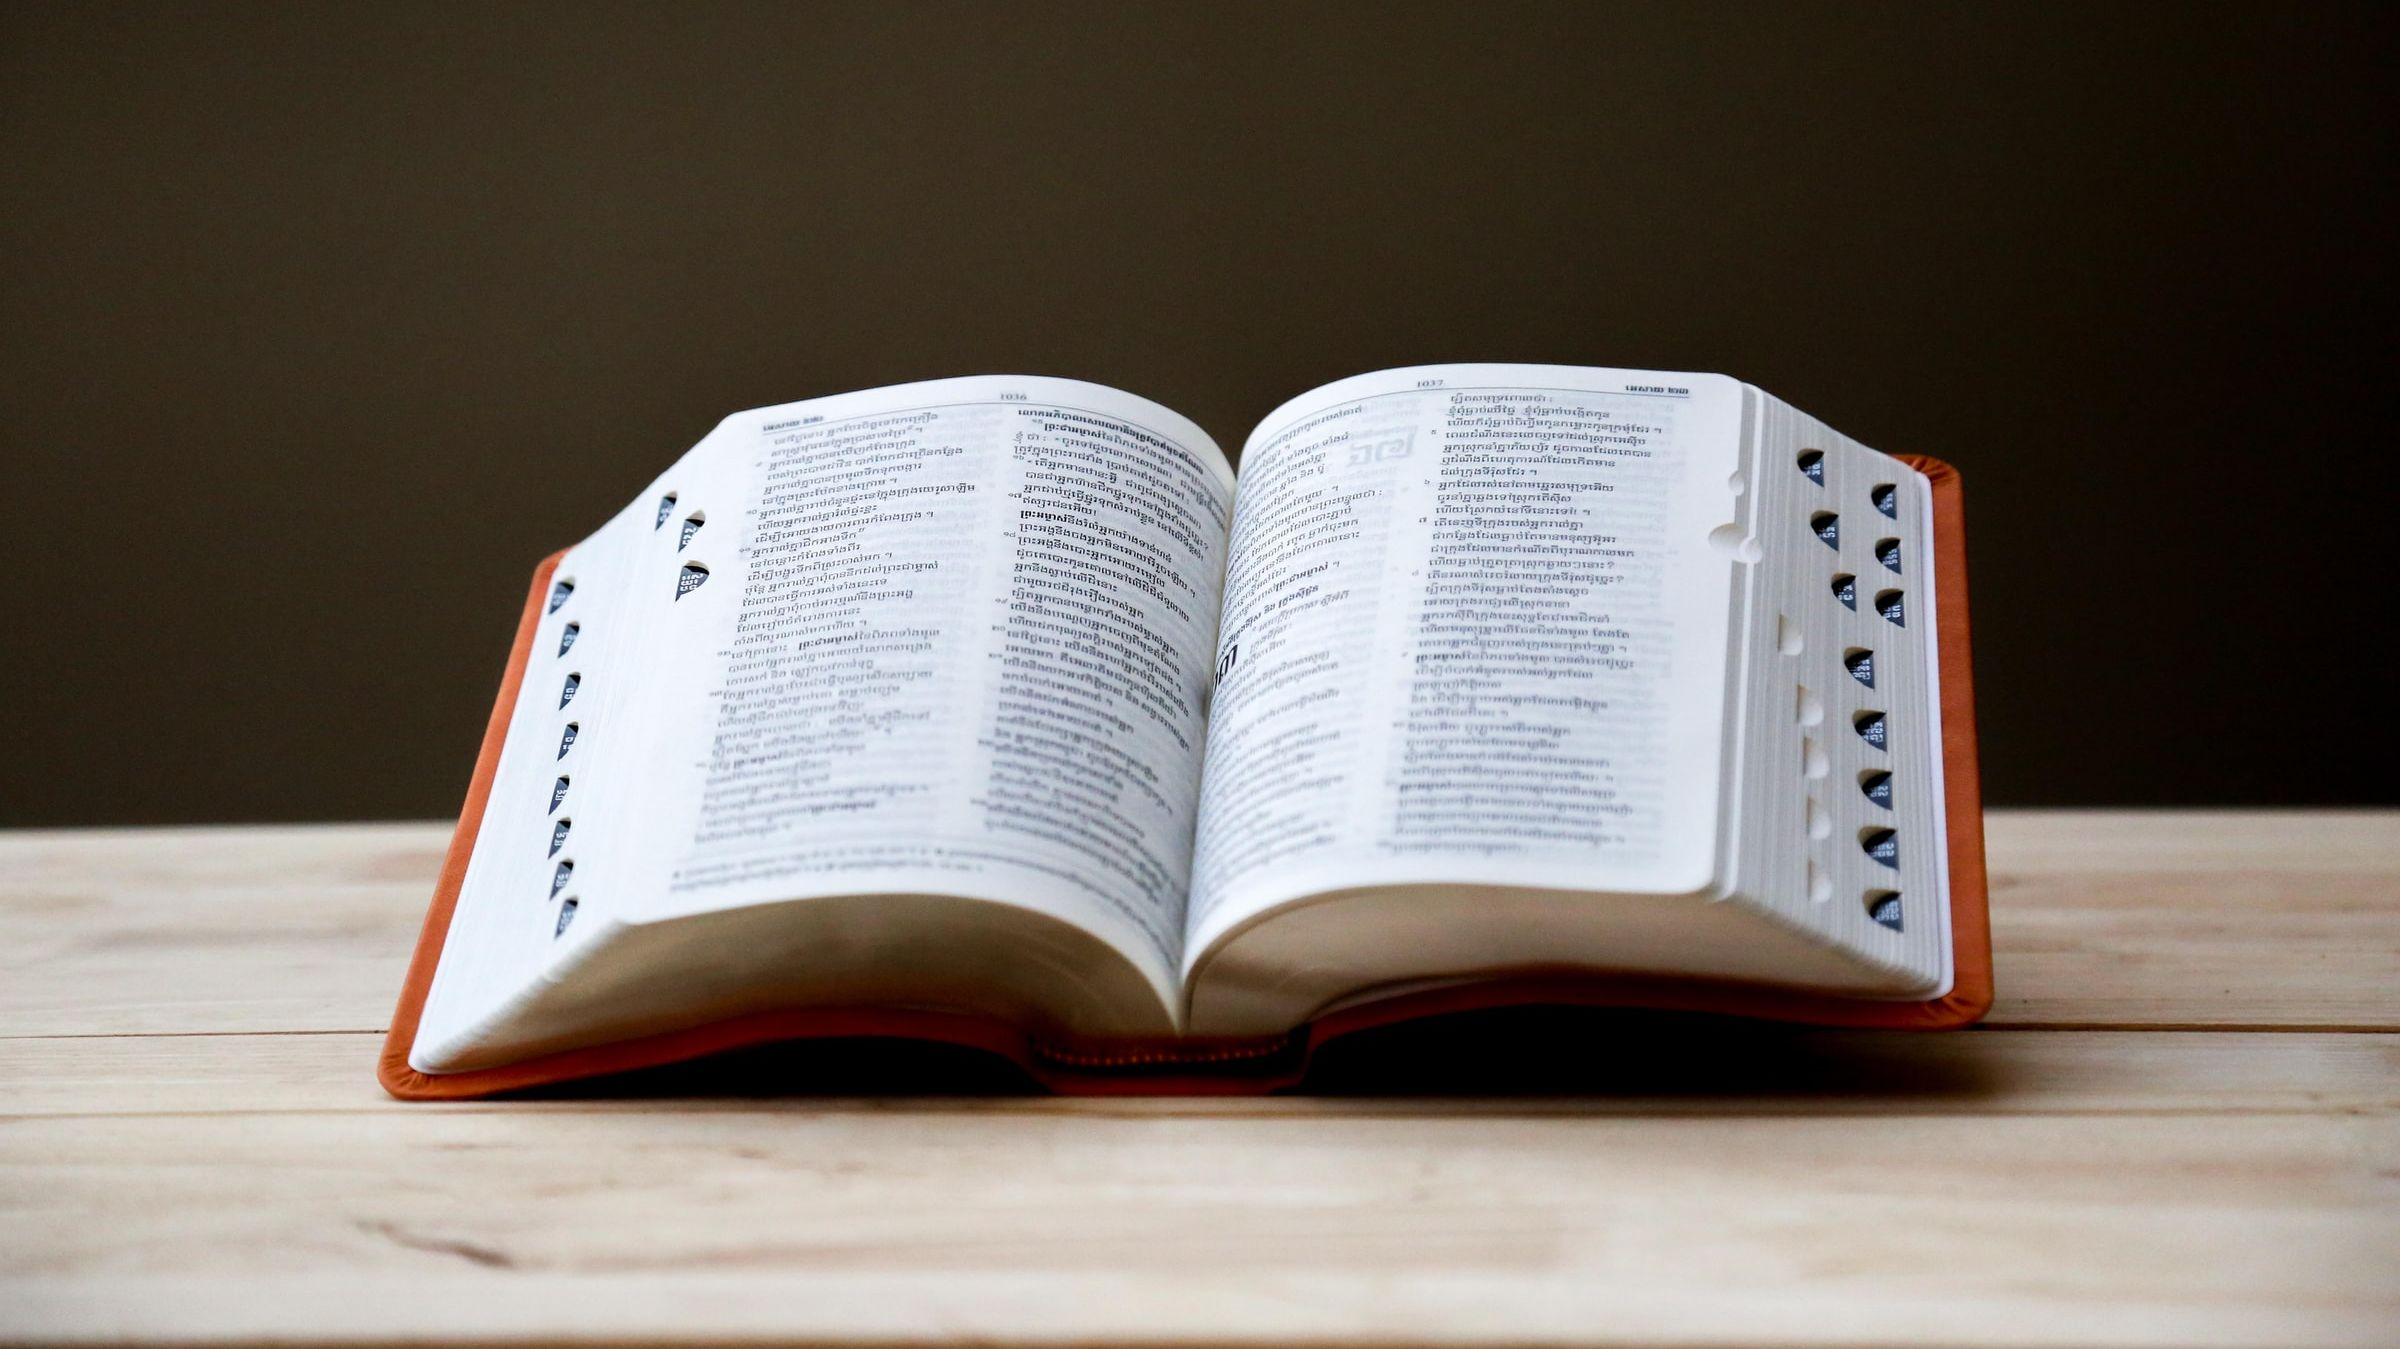 More Than 650 New Words Have Been Added to Dictionary.com—Here Are 50 of Them